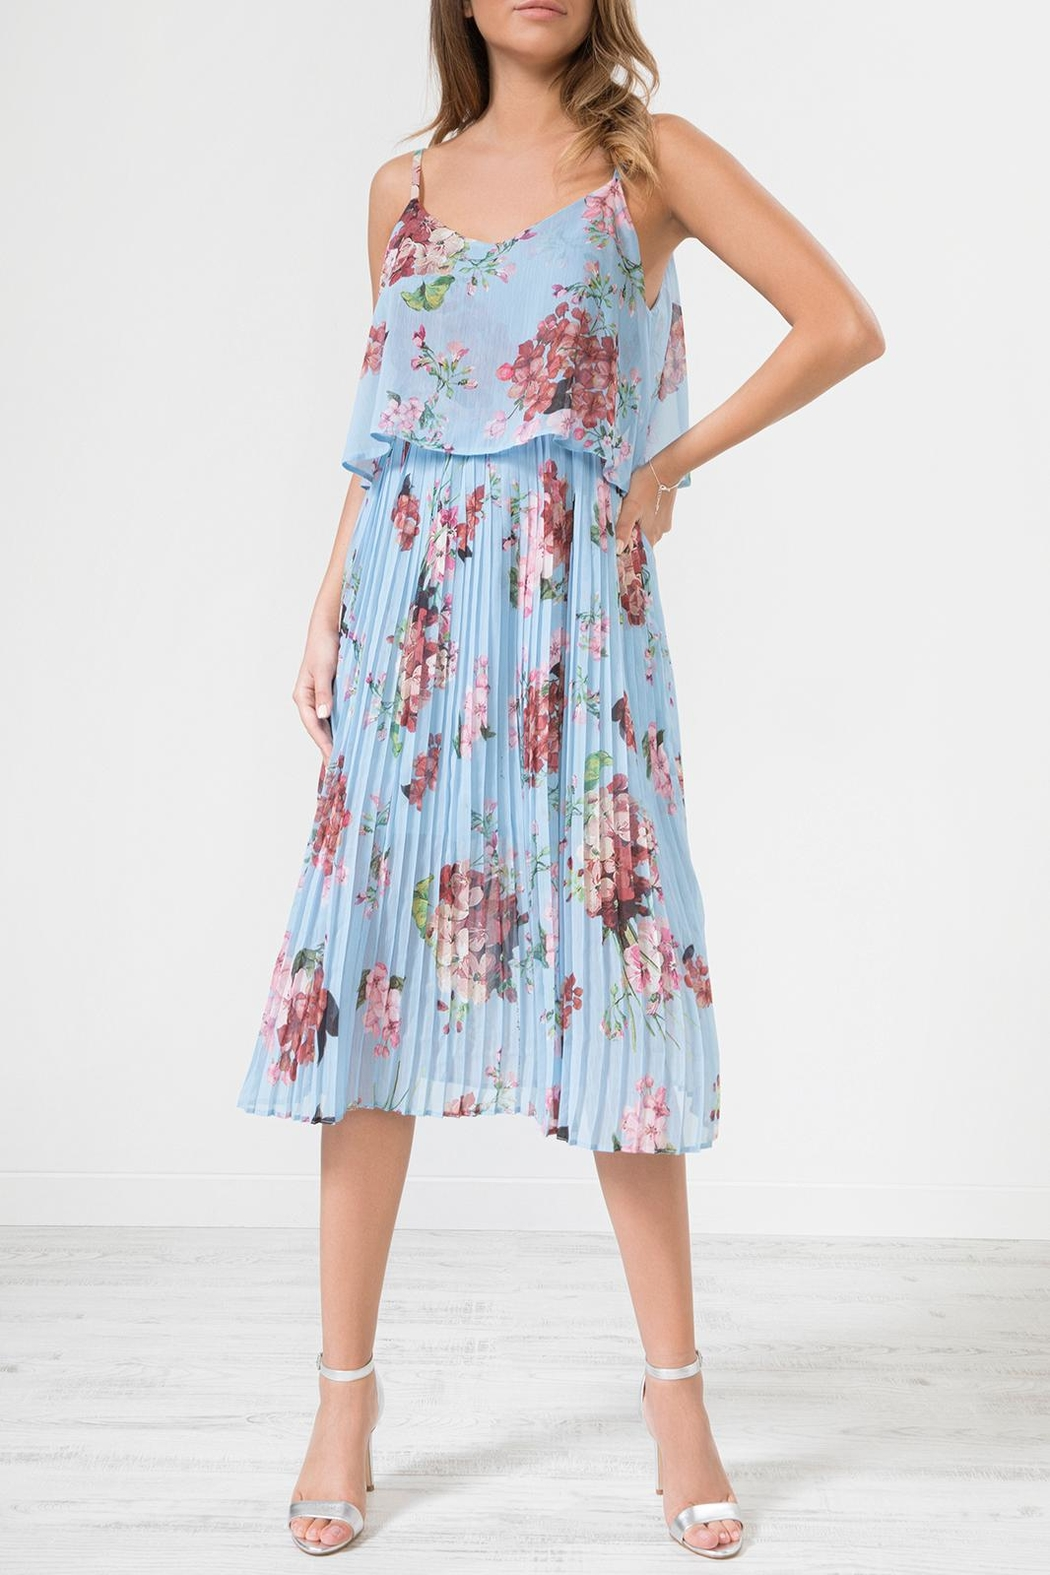 Urban Touch Blue Floral Dress - Main Image